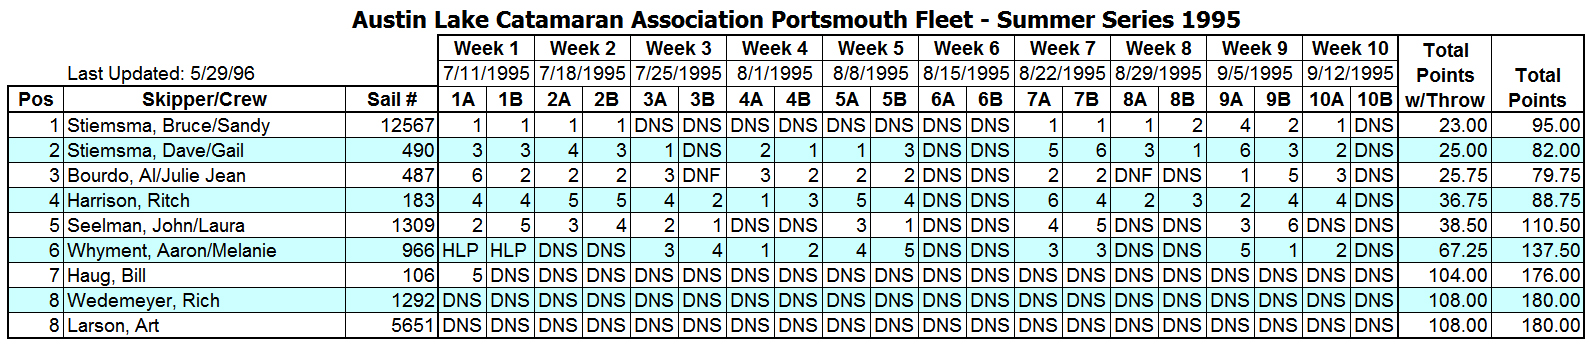 1995 Summer Portsmouth Fleet Results